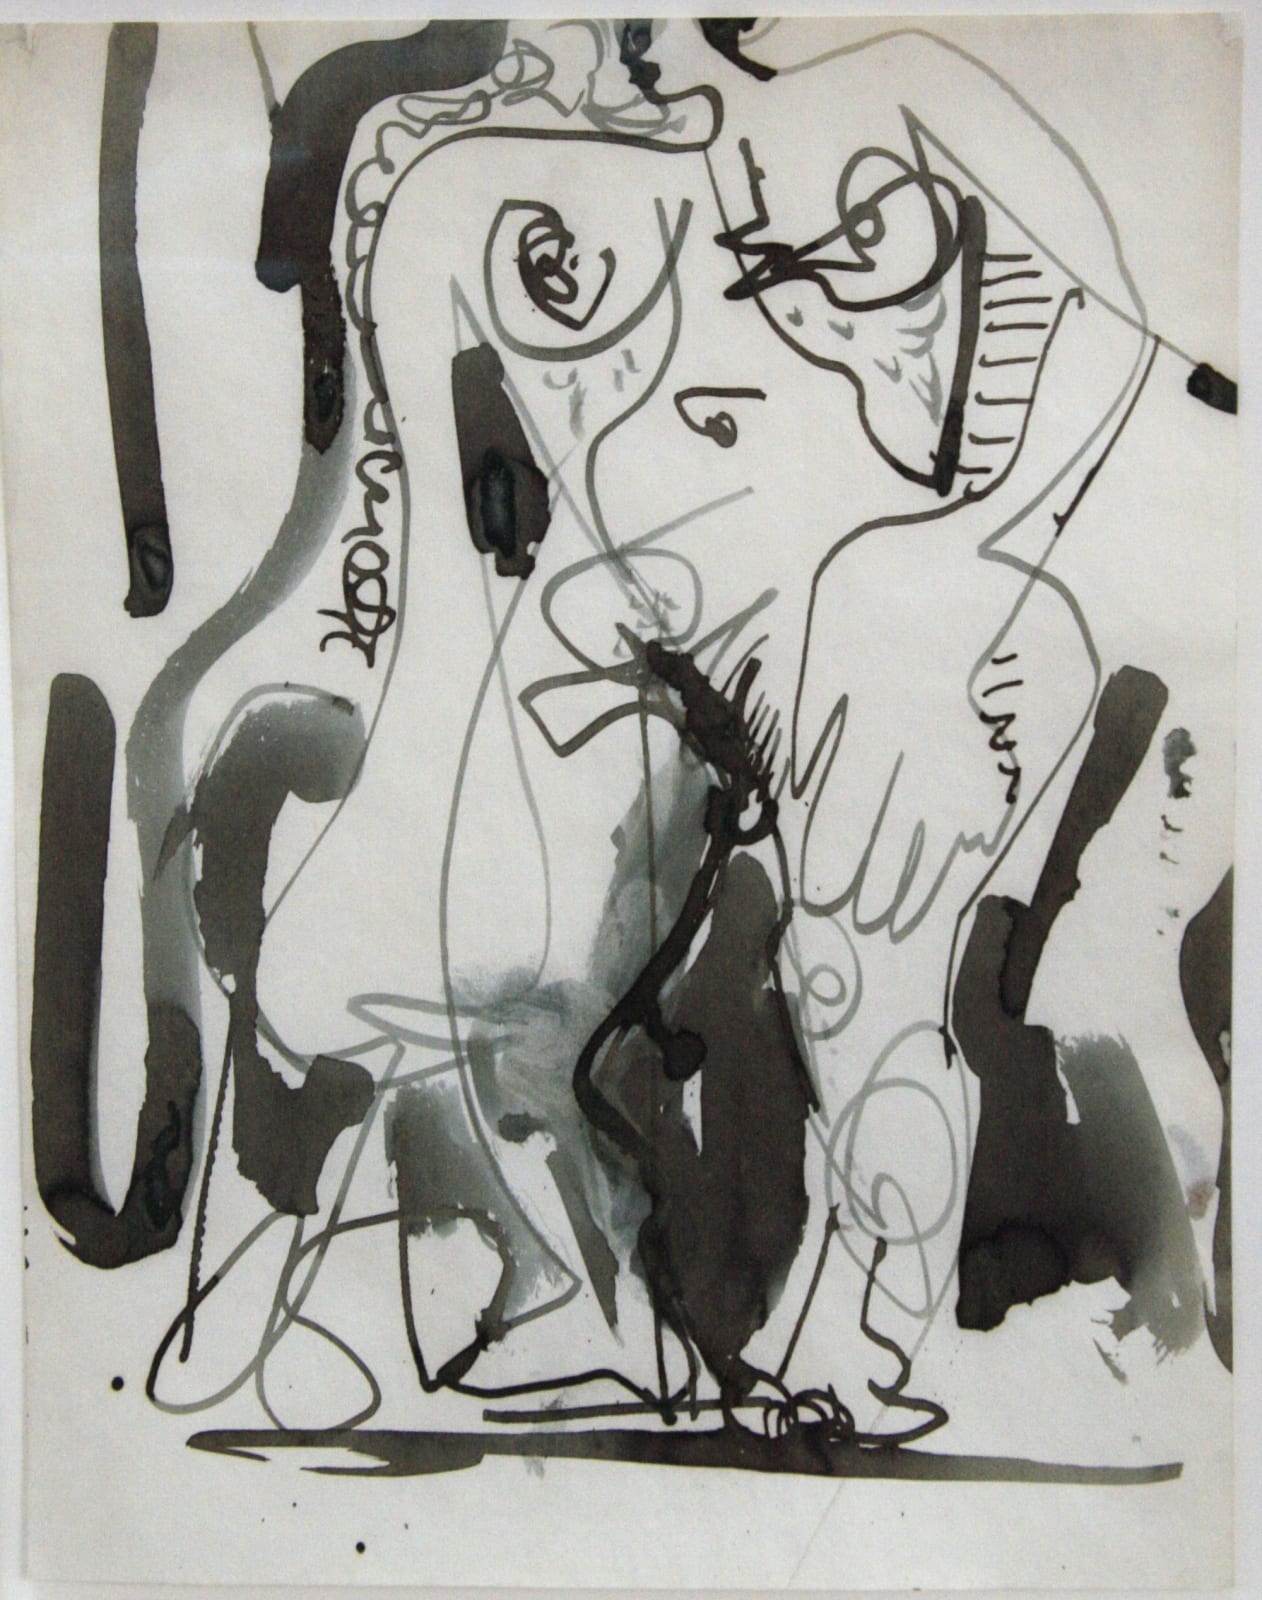 Hans HOFMANN (1880-1966) Untitled, c. 1935 India ink on paper 8 ½ x 11 inches / 21.6 x 27.9 cm HH No – M-0933/856